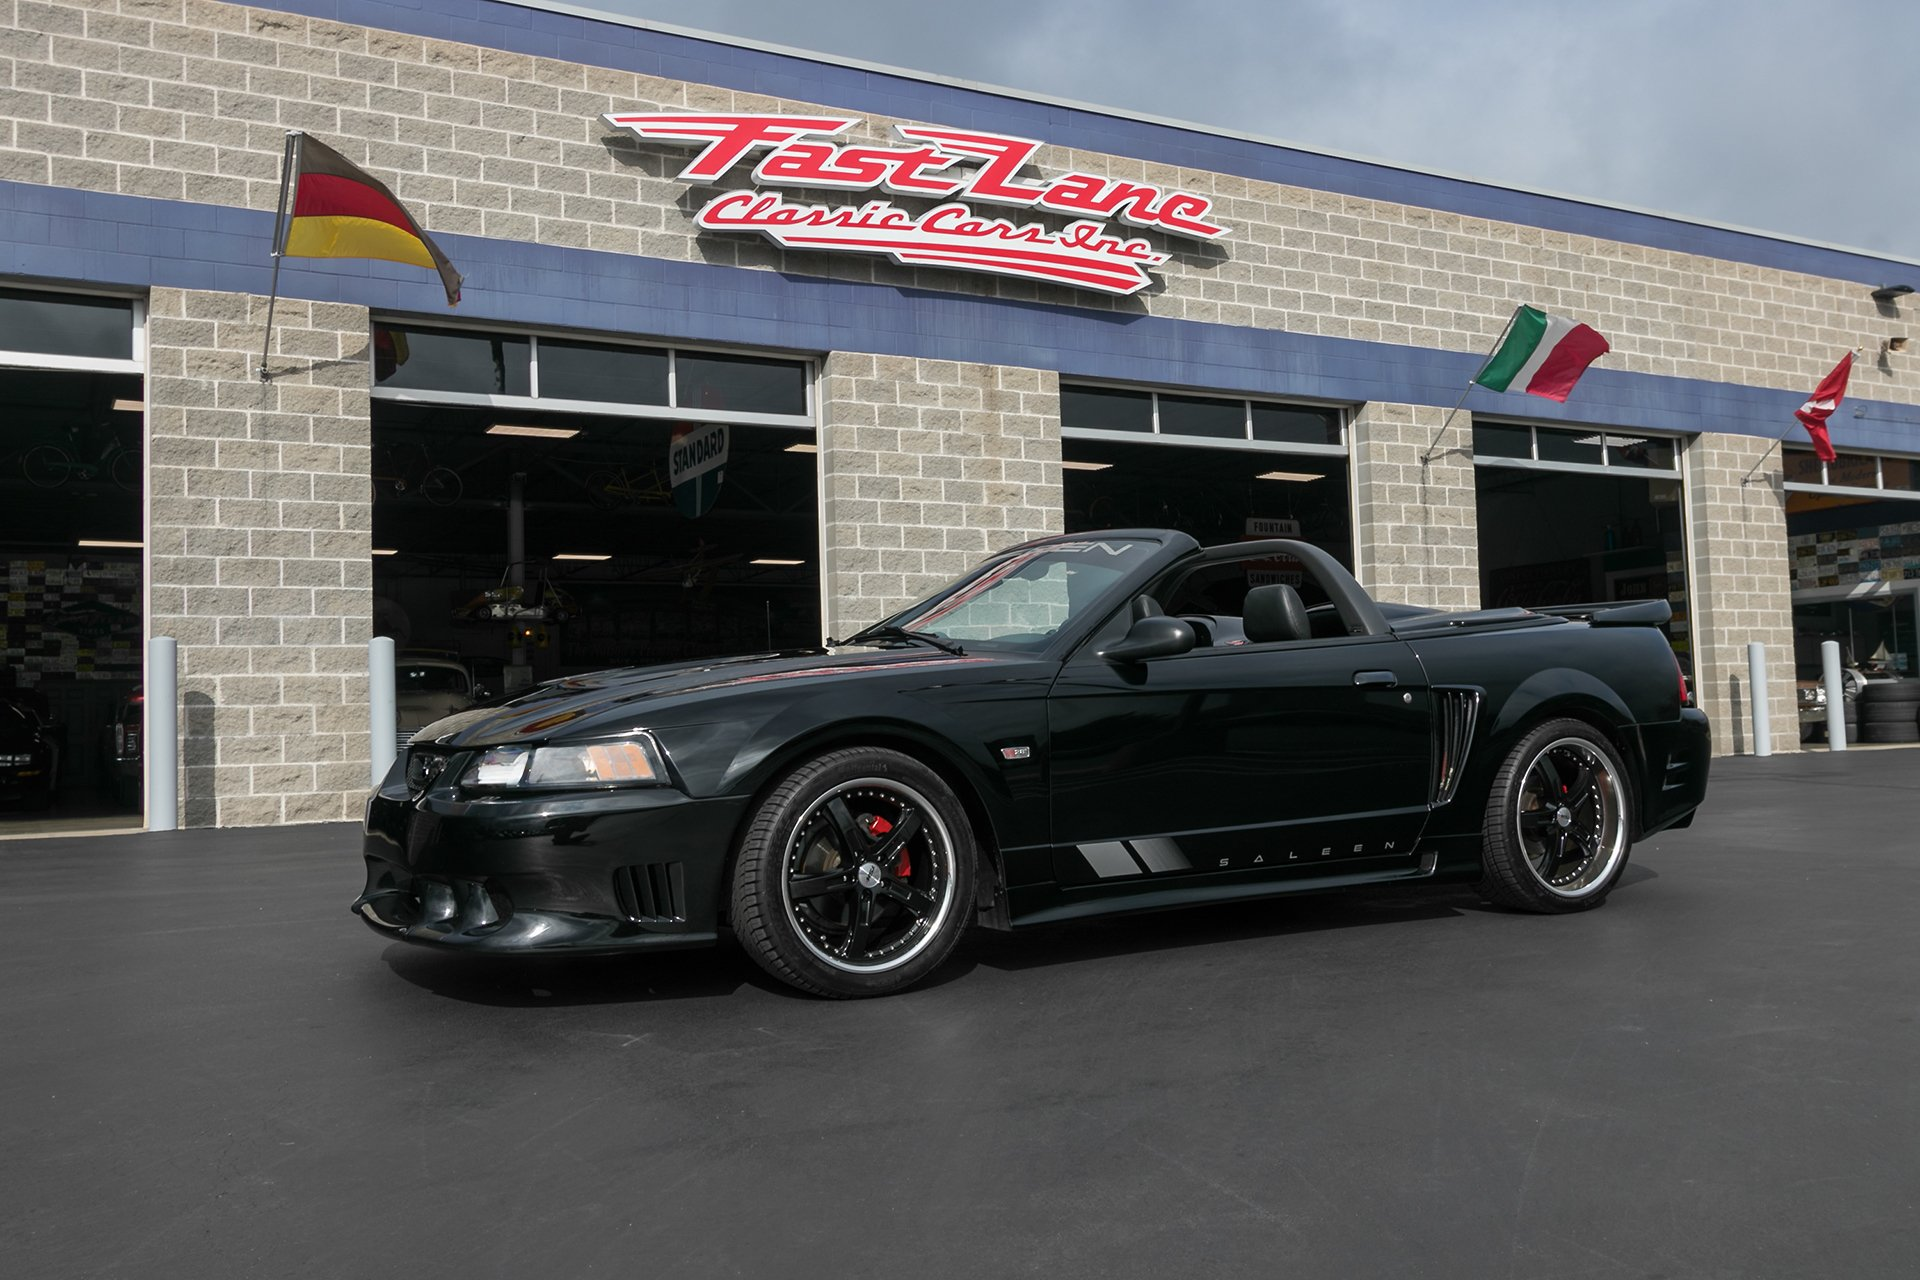 2004 Ford Mustang Saleen Fast Lane Classic Cars